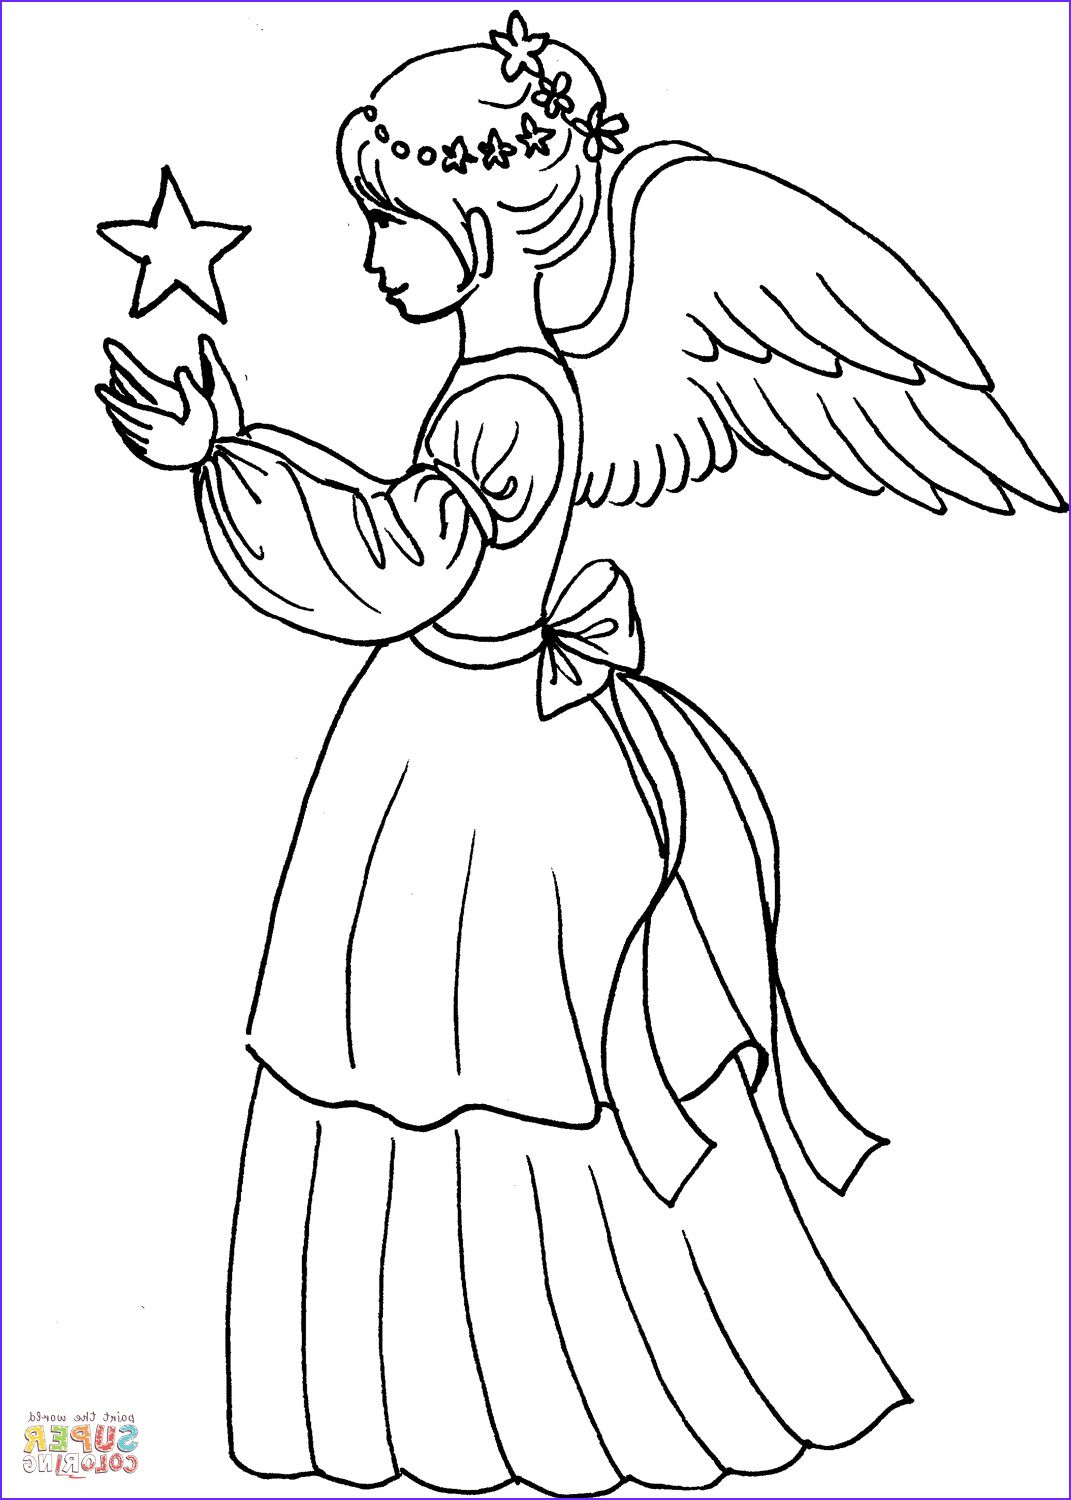 Christmas Angel Girl With Star Coloring Page Coloring Pages Sunday School Coloring Pages Star Coloring Pages